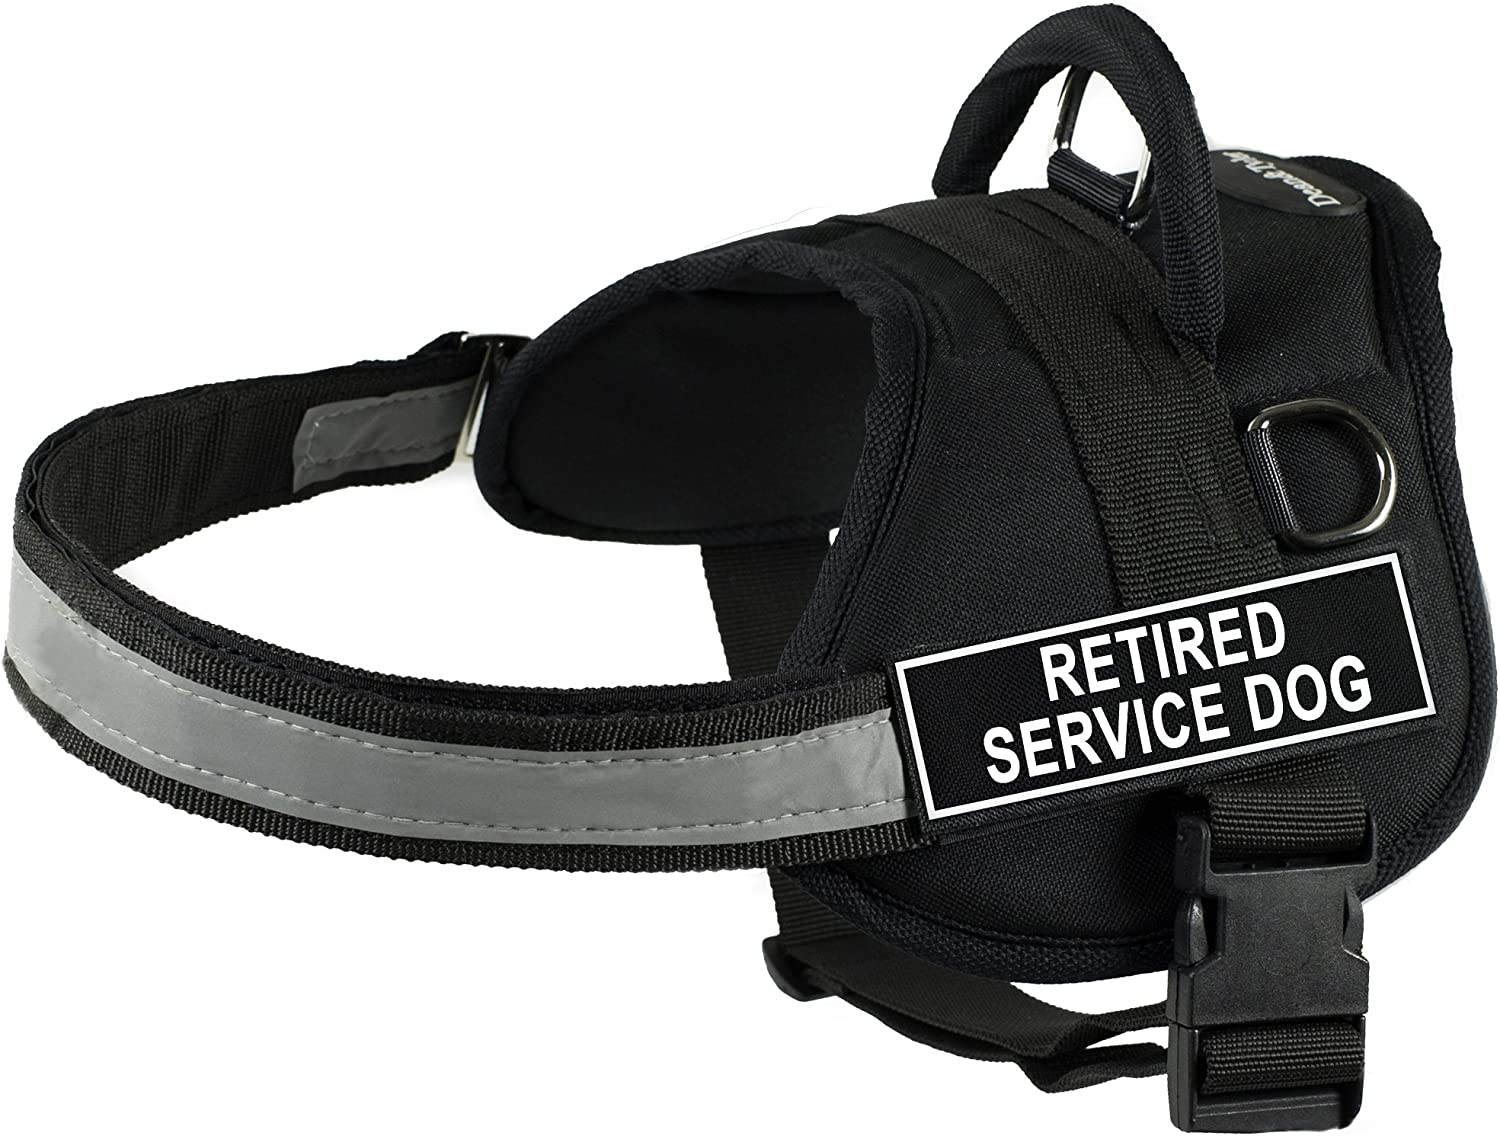 Dean & Tyler 21Inch to 26Inch Pet Harness, XSmall, Retired Service Dog, Black